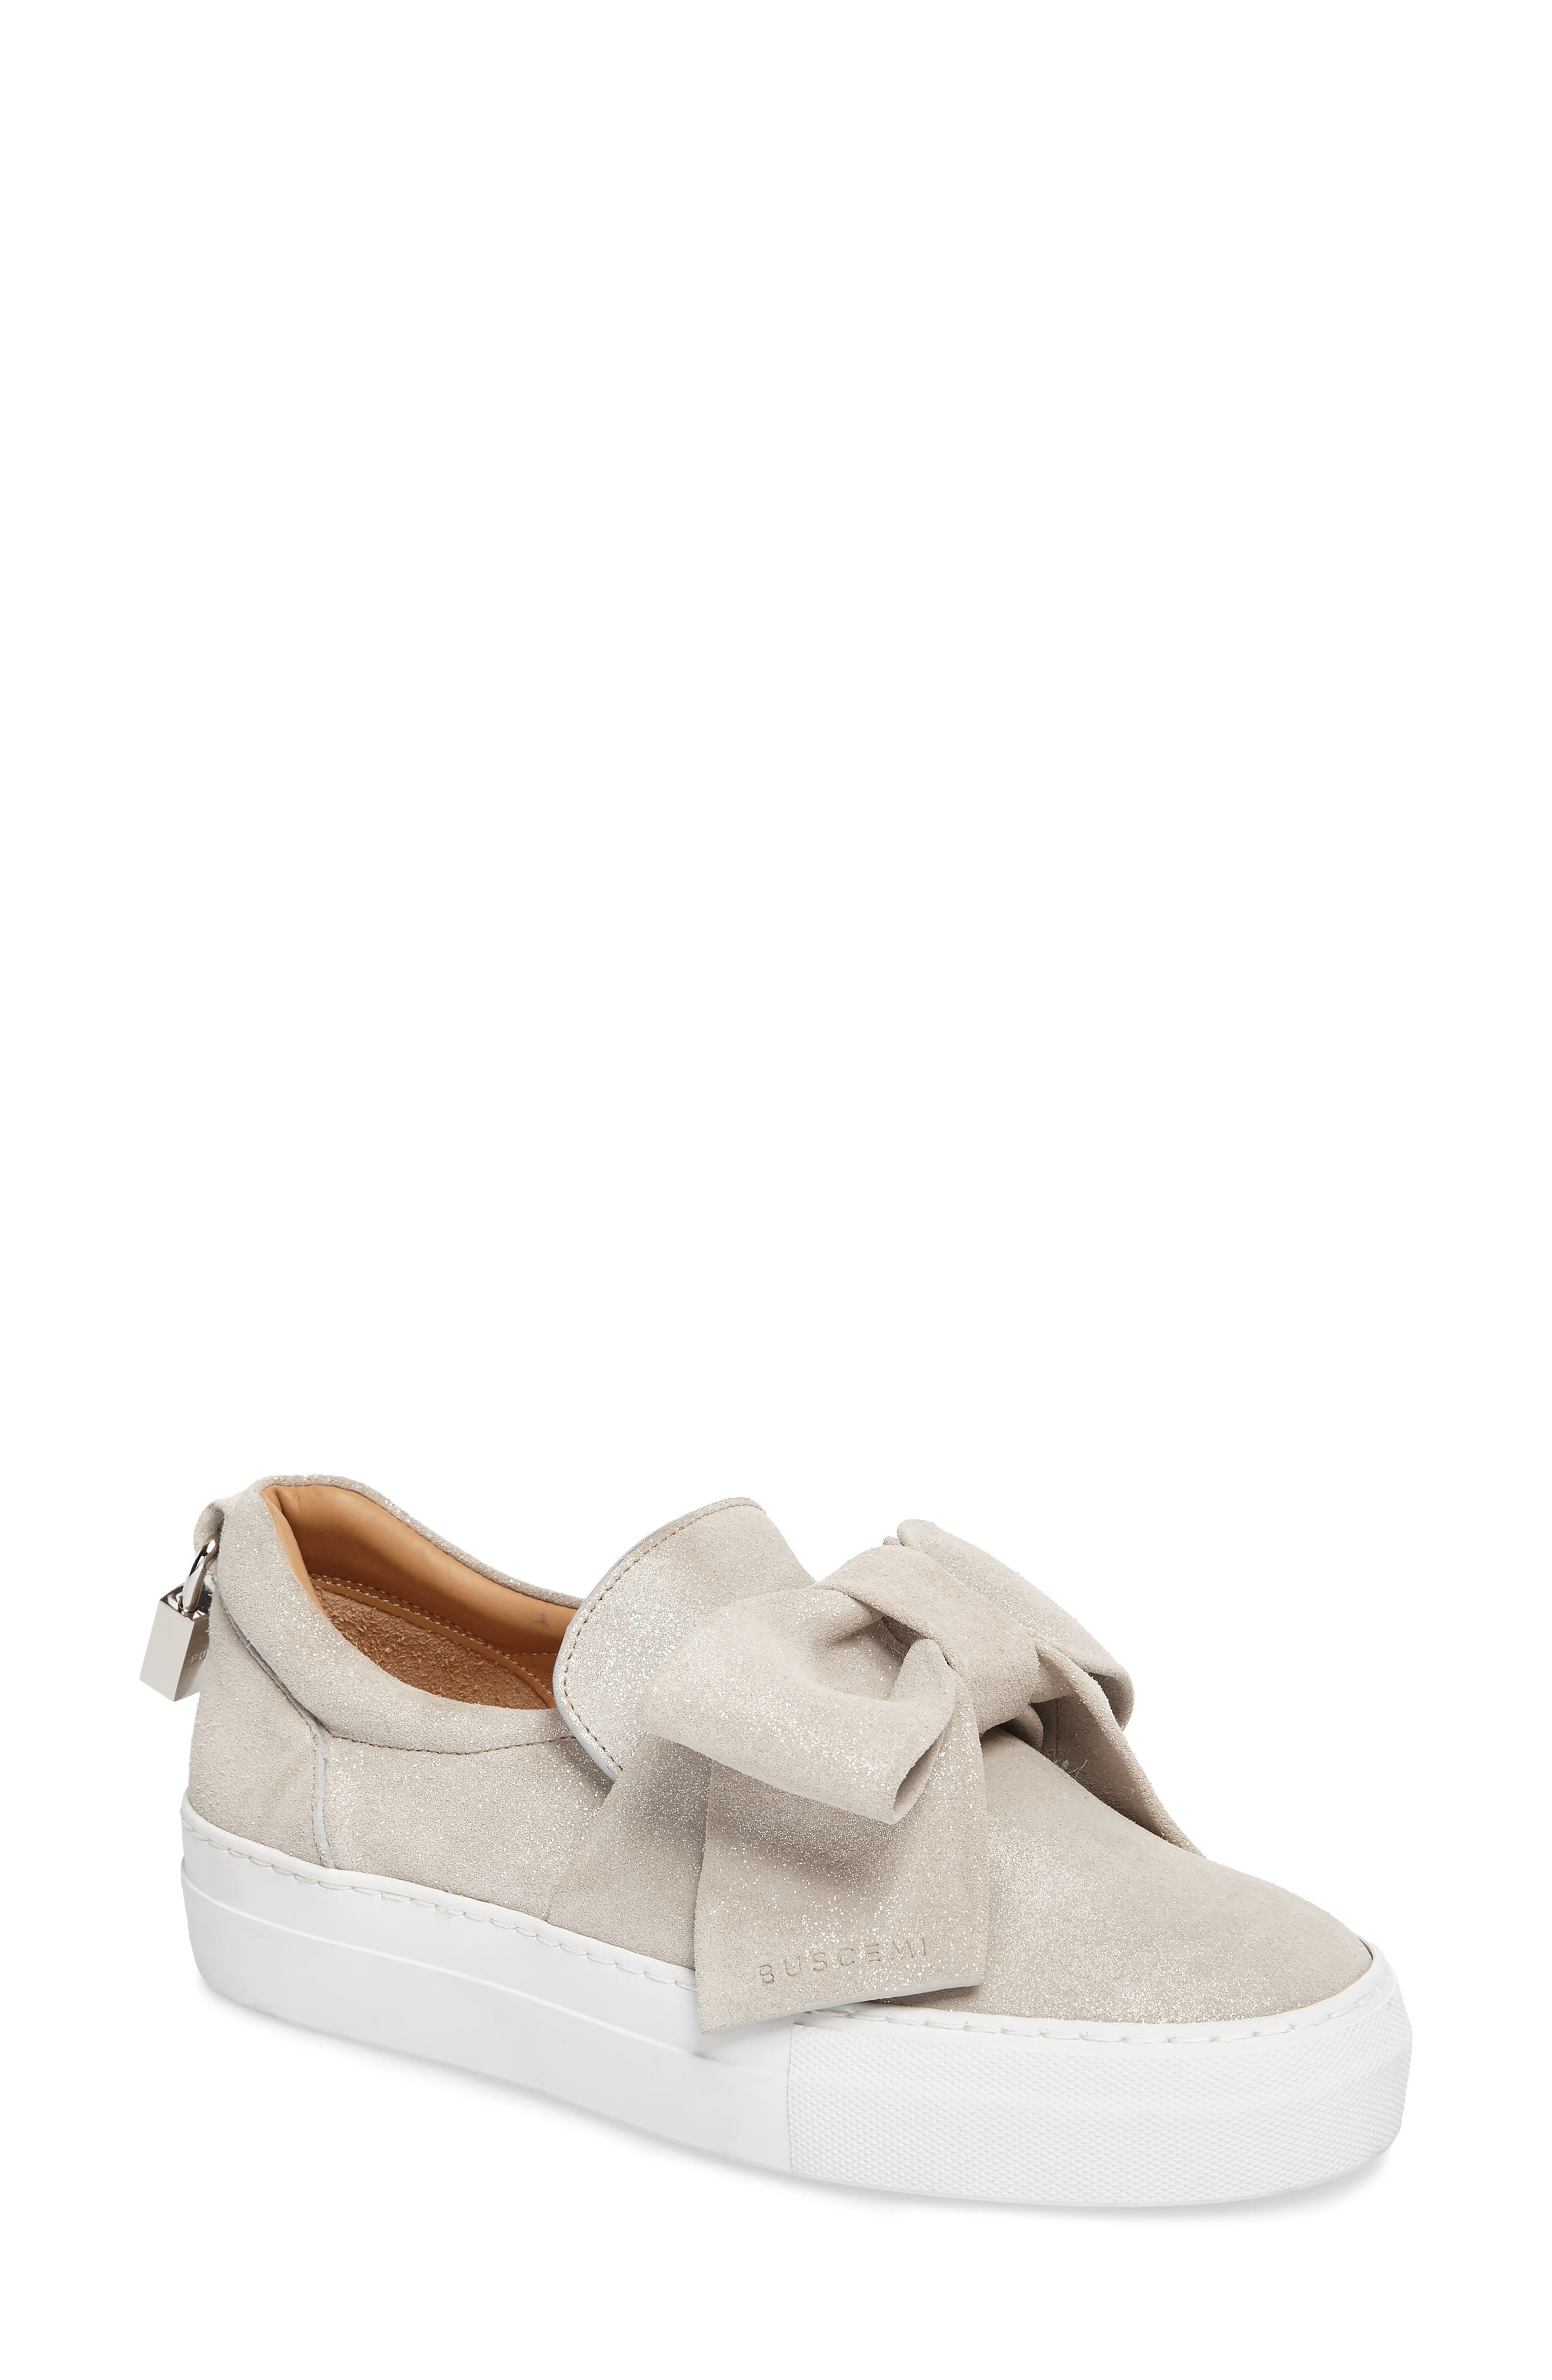 Bow Slip-On Sneaker,                             Main thumbnail 1, color,                             020